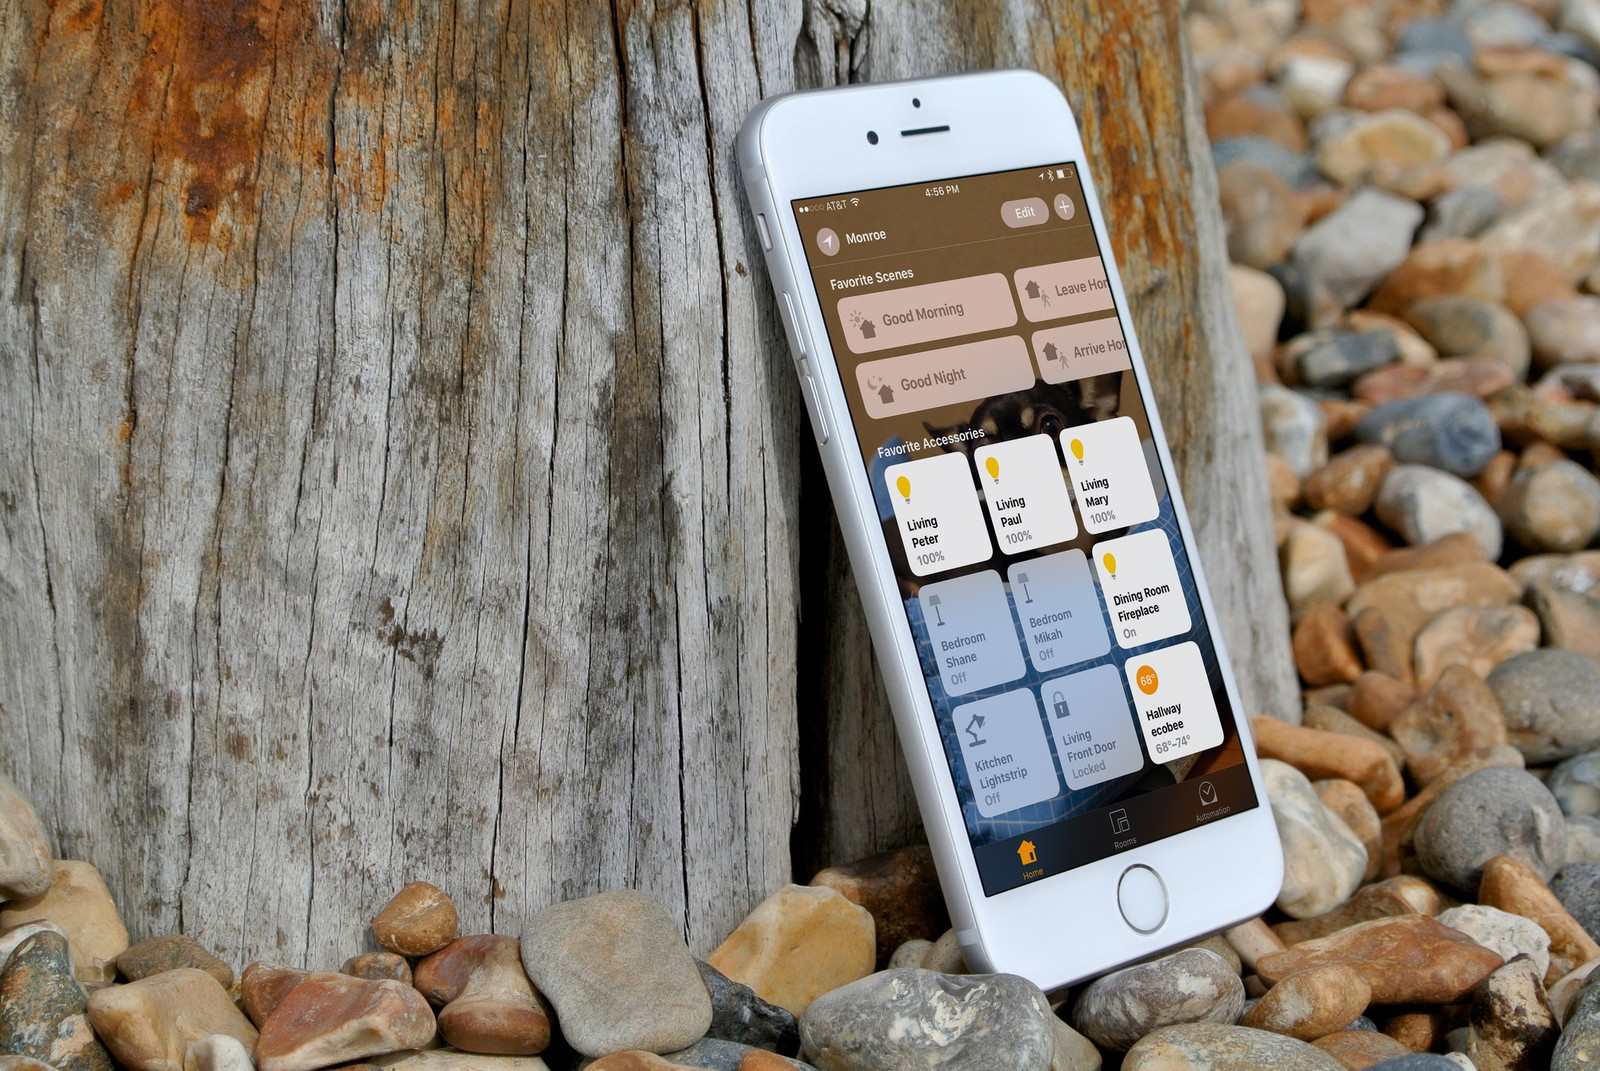 Set Your Favorite Scenes And Accessories In The IOS Home App.